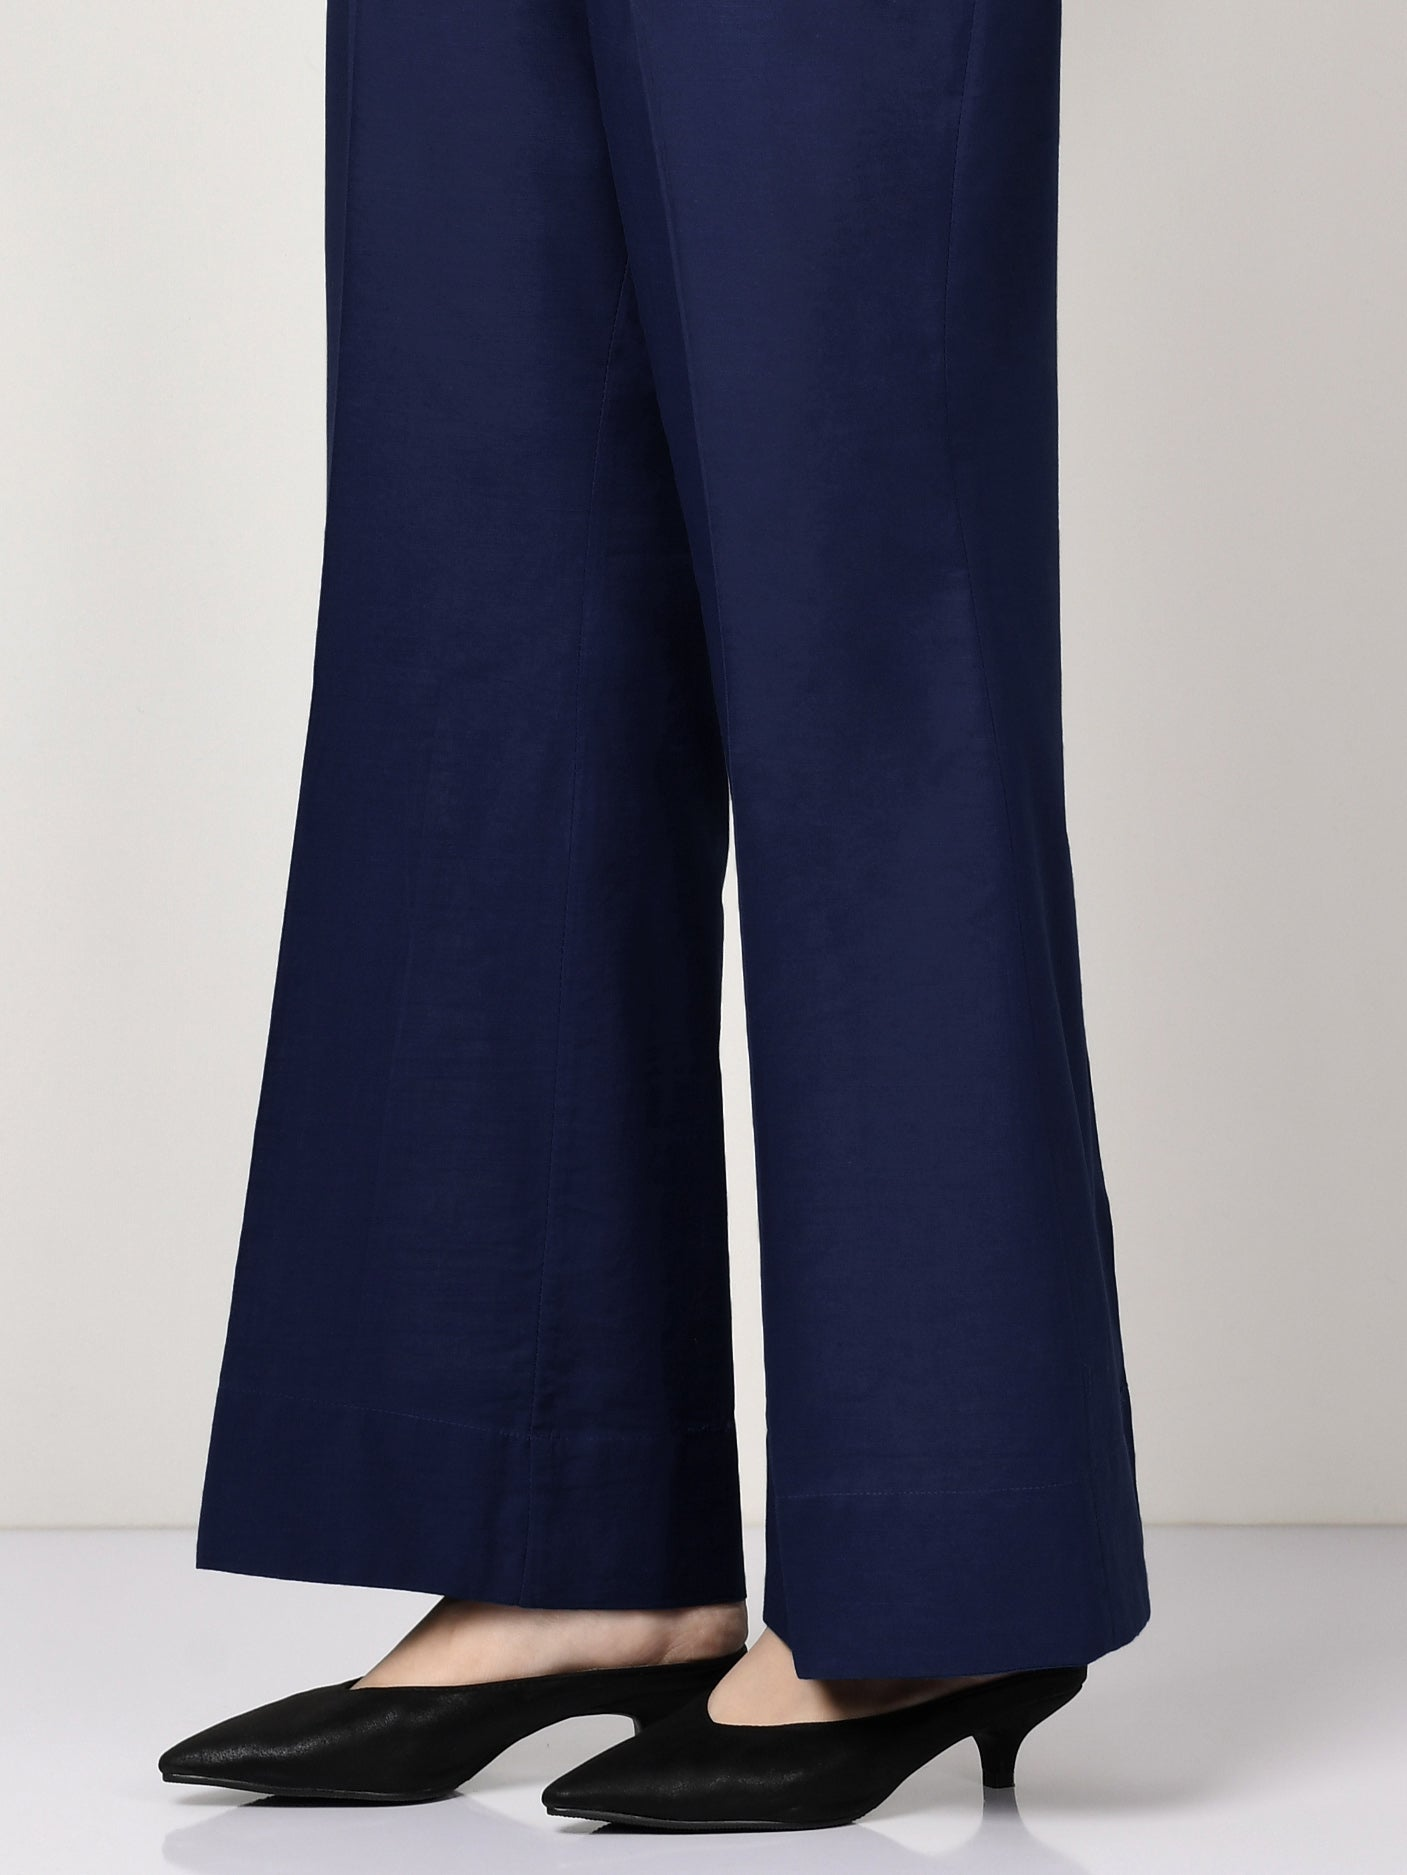 Unstitched Khaddar Trouser - Dark Blue